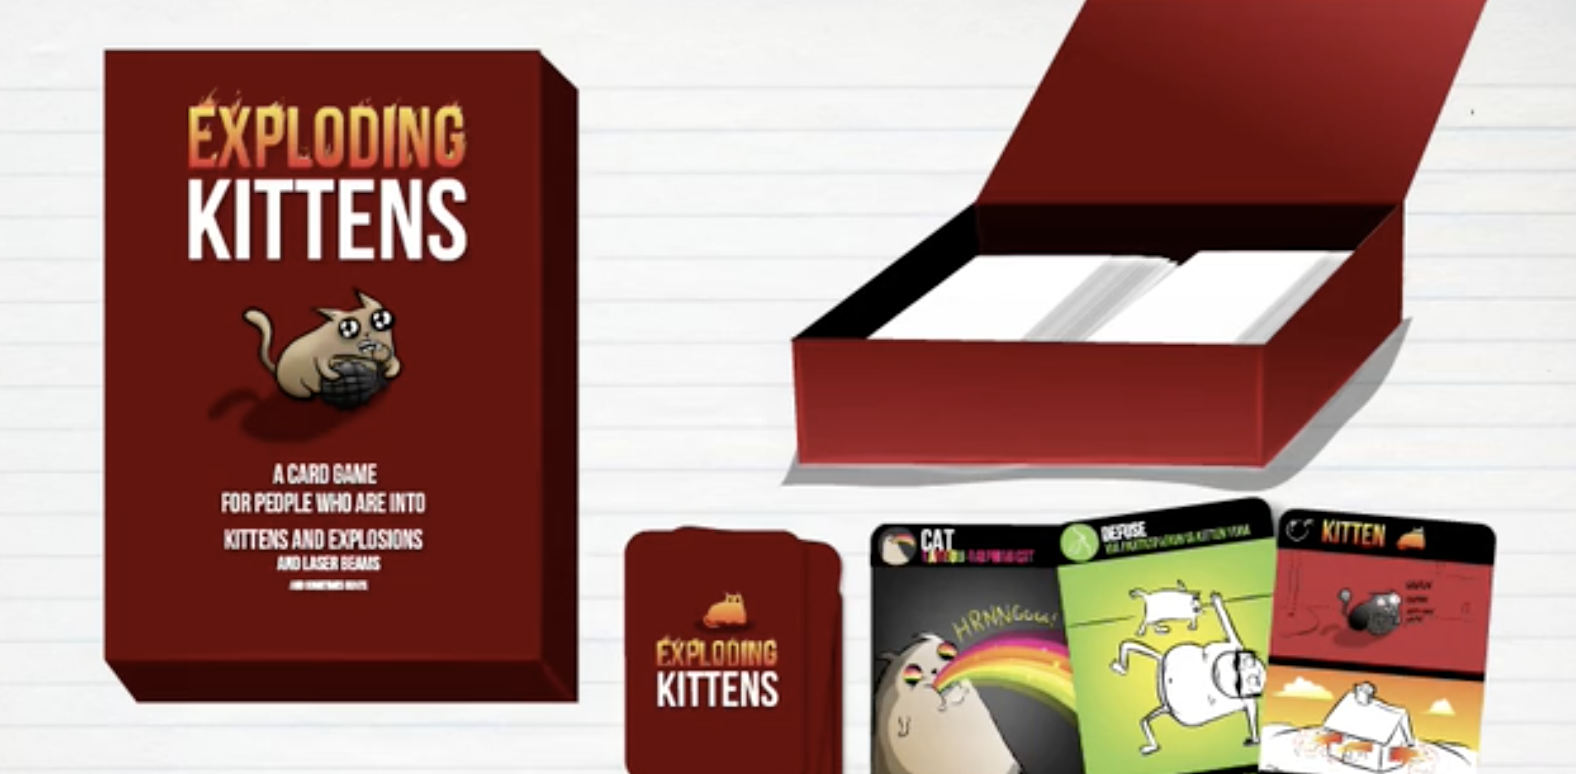 Exploding Kittens is one of the most successful kickstarter campaigns.